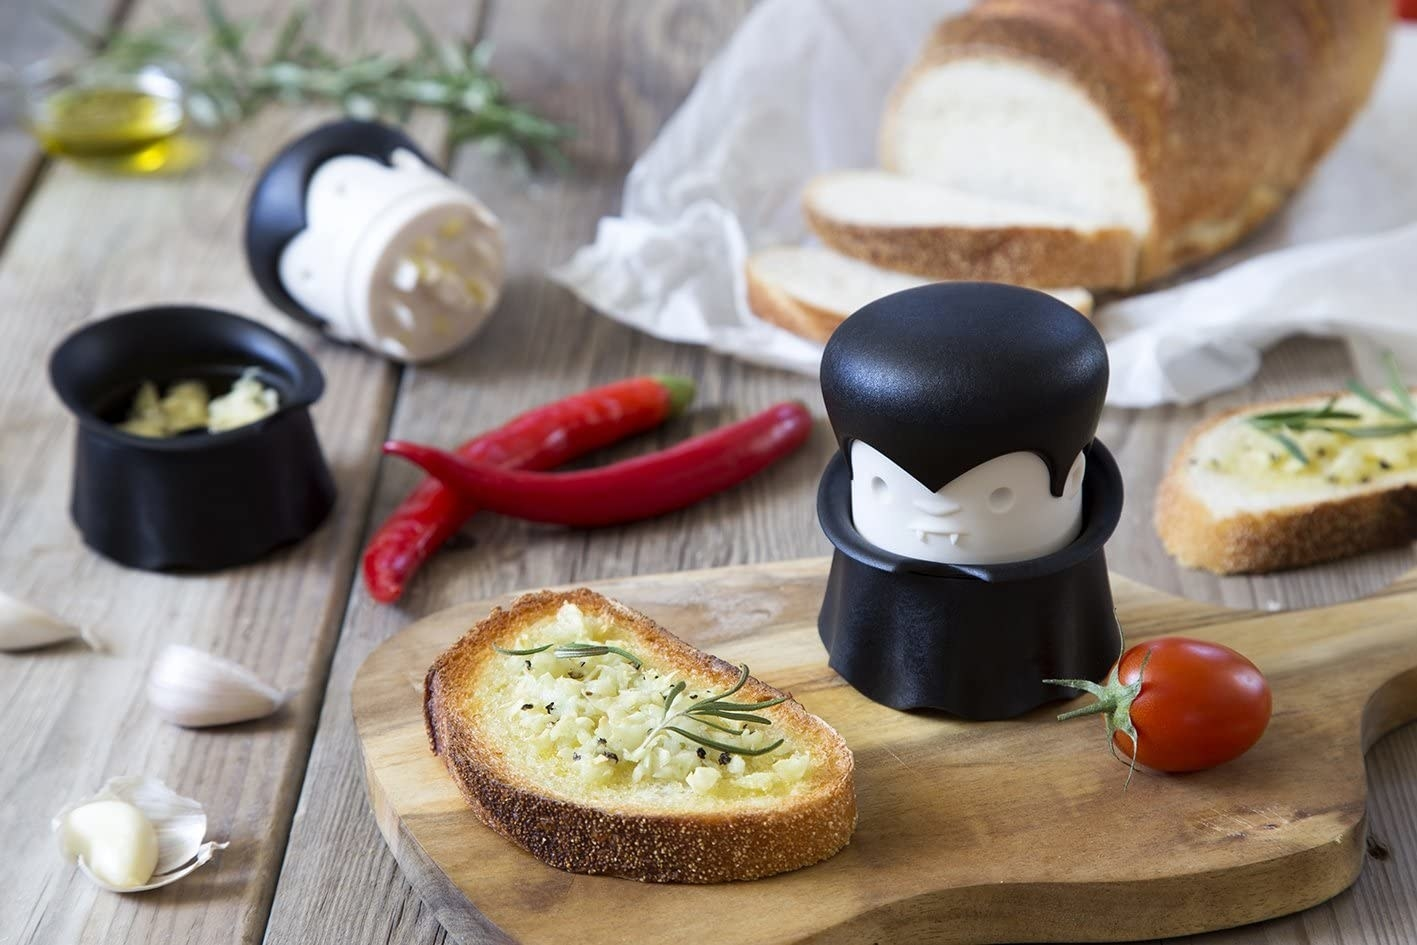 A handheld garlic chopper that looks like a vampire with a small face and long black robe